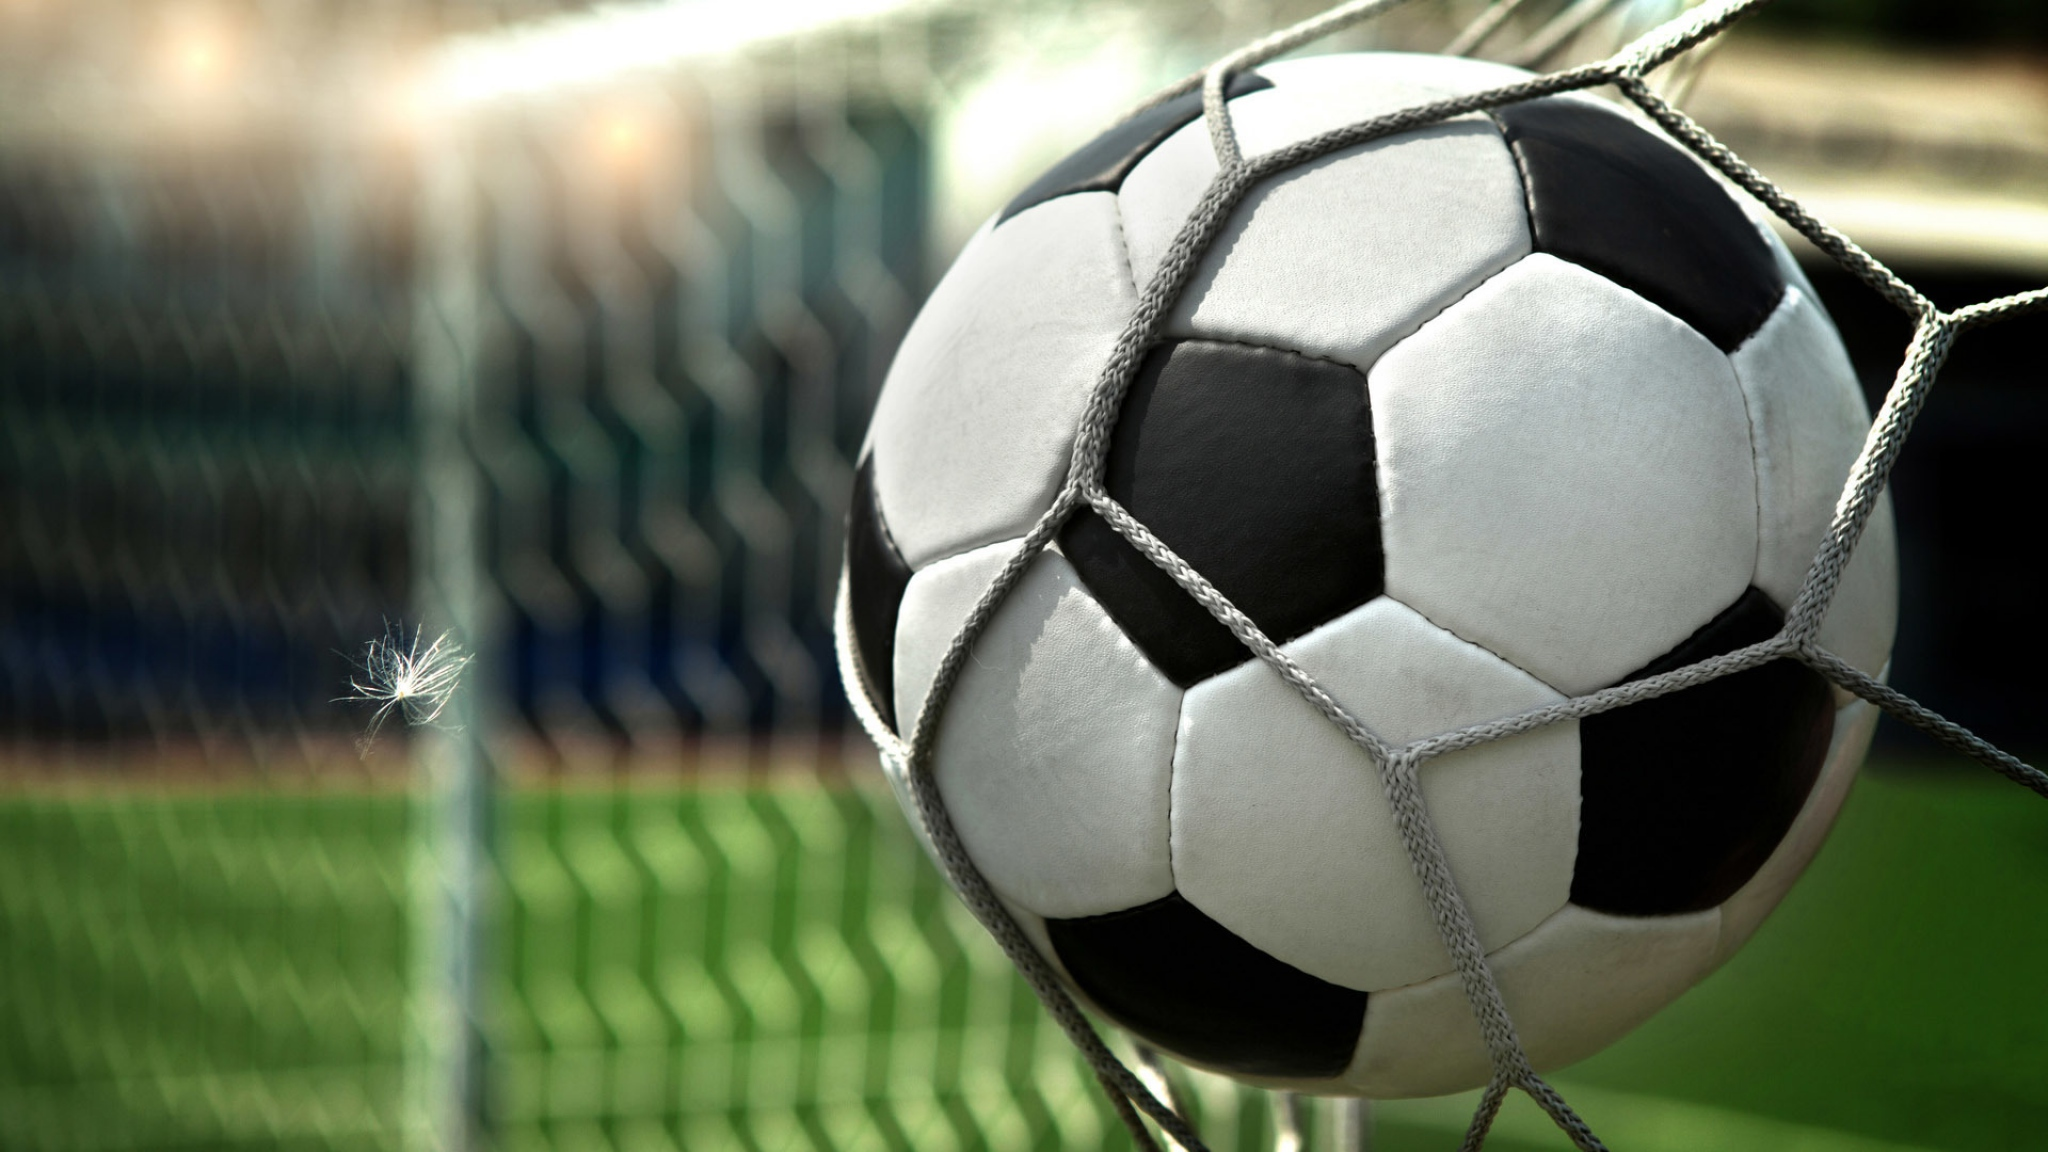 Soccer HD Wallpaper   Background Image   2048x1152   ID 657869     Wallpapers ID 657869